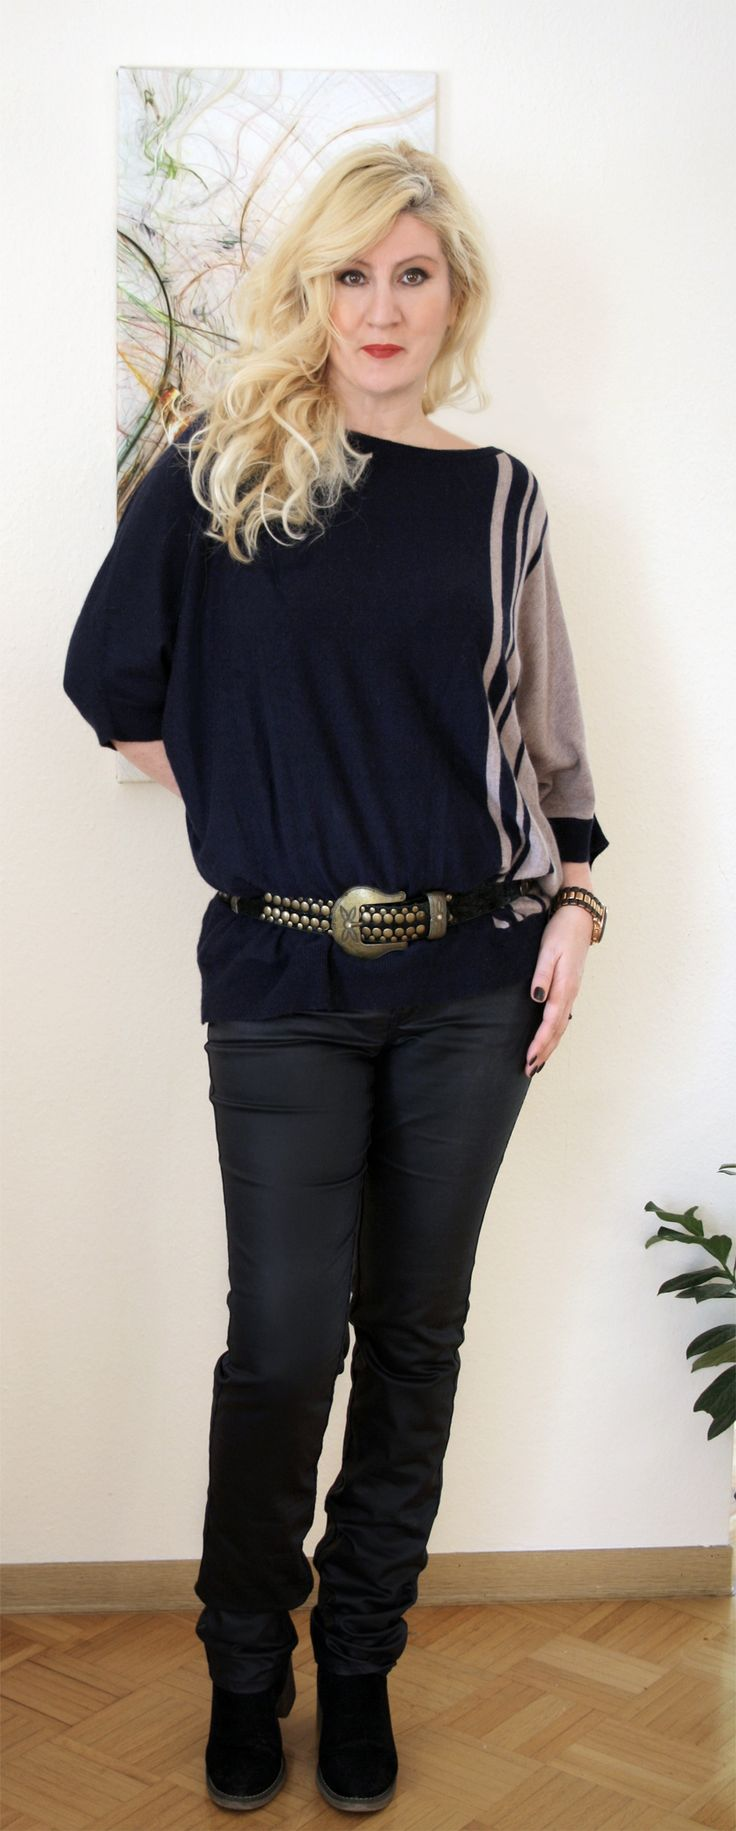 Cashmere-Sweater with leather and turquoise stones belt, satindenim pants and suede leather boots